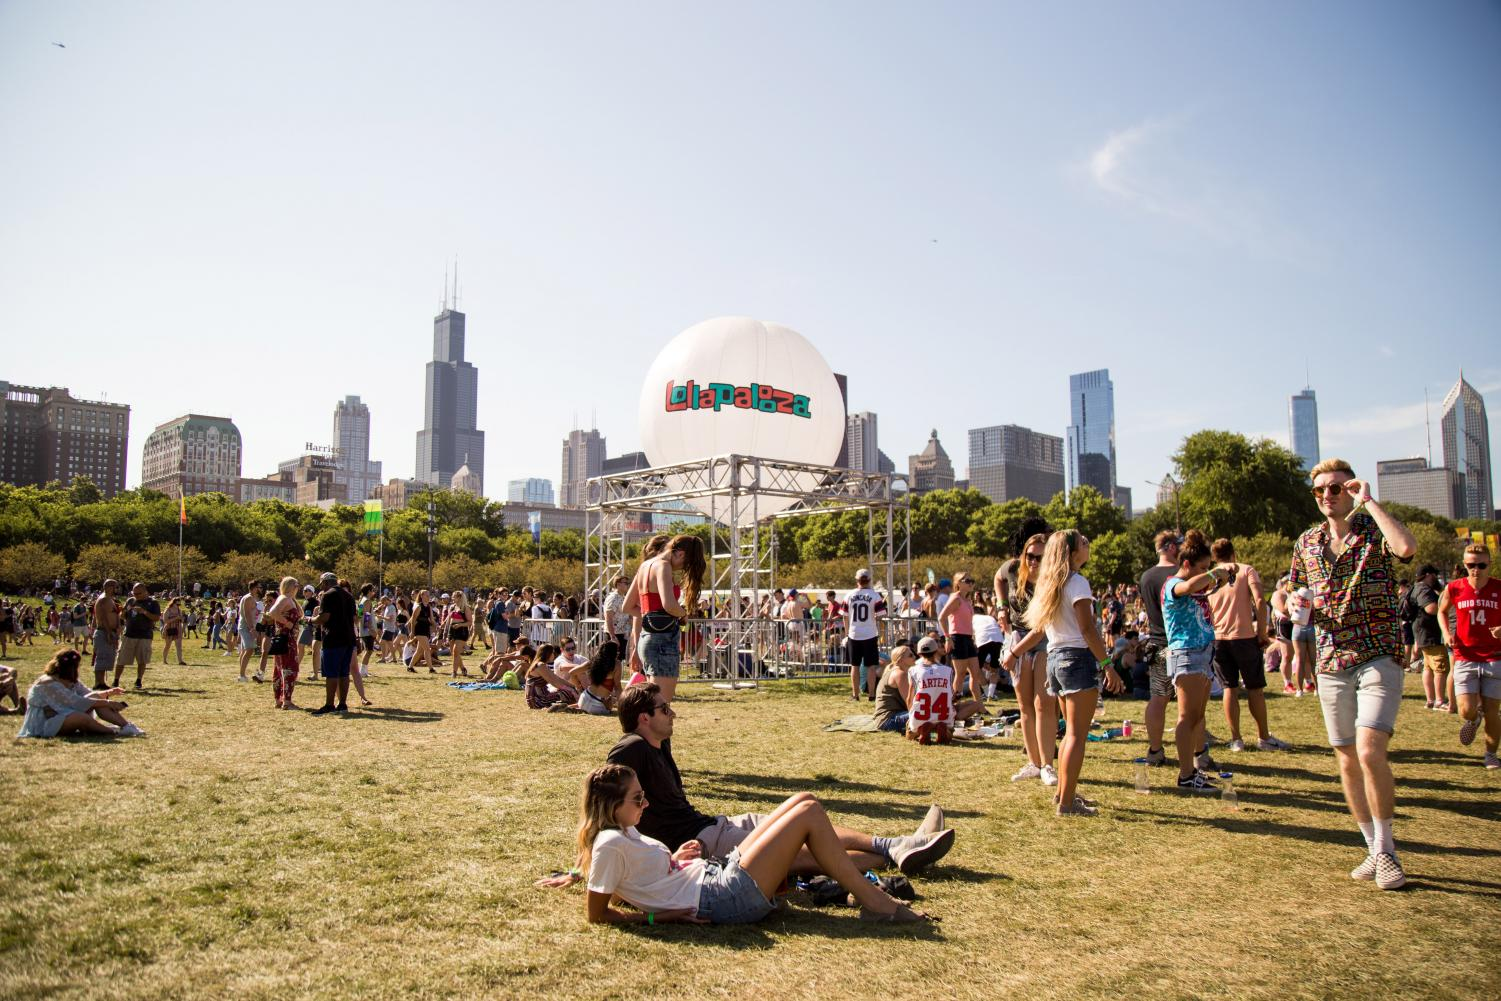 According+to+the+Lollapalooza+website%2C+ticket+prices+can+range+from+%24138+one-day+general+admission+to+%244%2C326+four-day+platinum+admission.